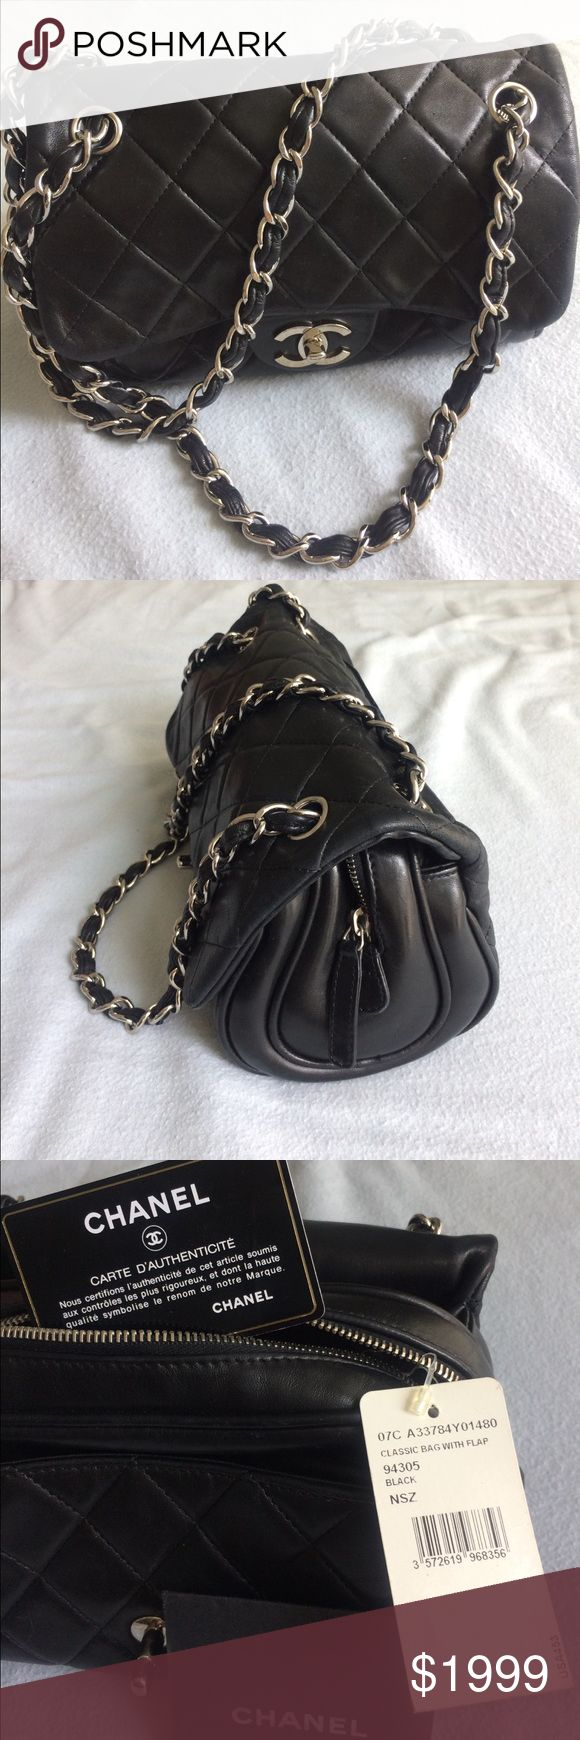 "Authentic Chanel bag with tags Mint condition authentic Chanel. Has authentication card. Great condition. Has a bit of wear at the flap as pictured. 9"" wide. 7"" tall. 5"" at the sides at the widest point. 15"" from top of straps to bottom of bag. Straps are in excellent condition. 3 compartments inside PLUS zipper inside pocket. Also pocket slot in back of bag as photo. She's gorgeous. Not sure about dust bag. CHANEL Bags Shoulder Bags"